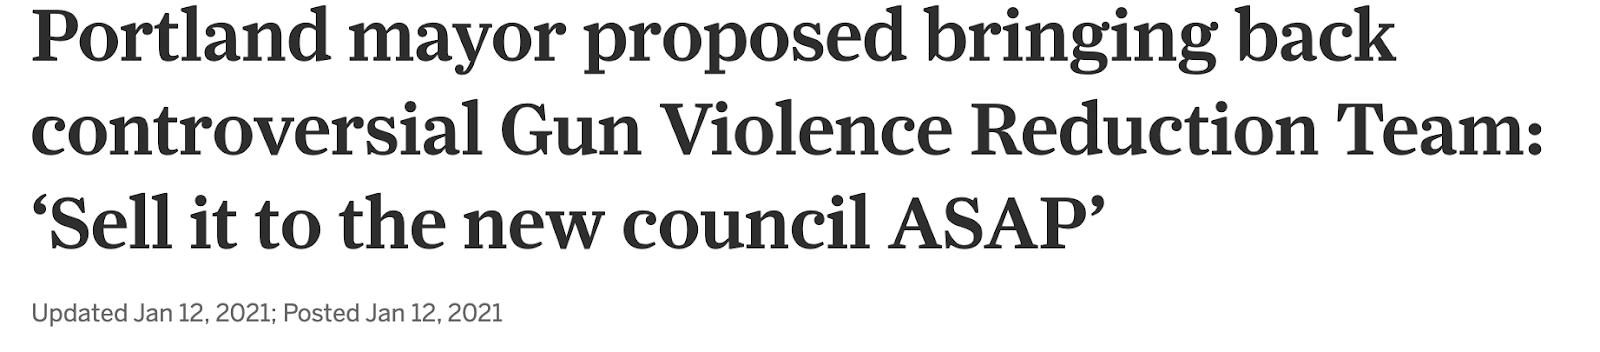 Screenshot from Oregonian, states: Portland mayor proposed bringing back controversial Gun Violence Reduction Team: 'Sell it to the new council ASAP'